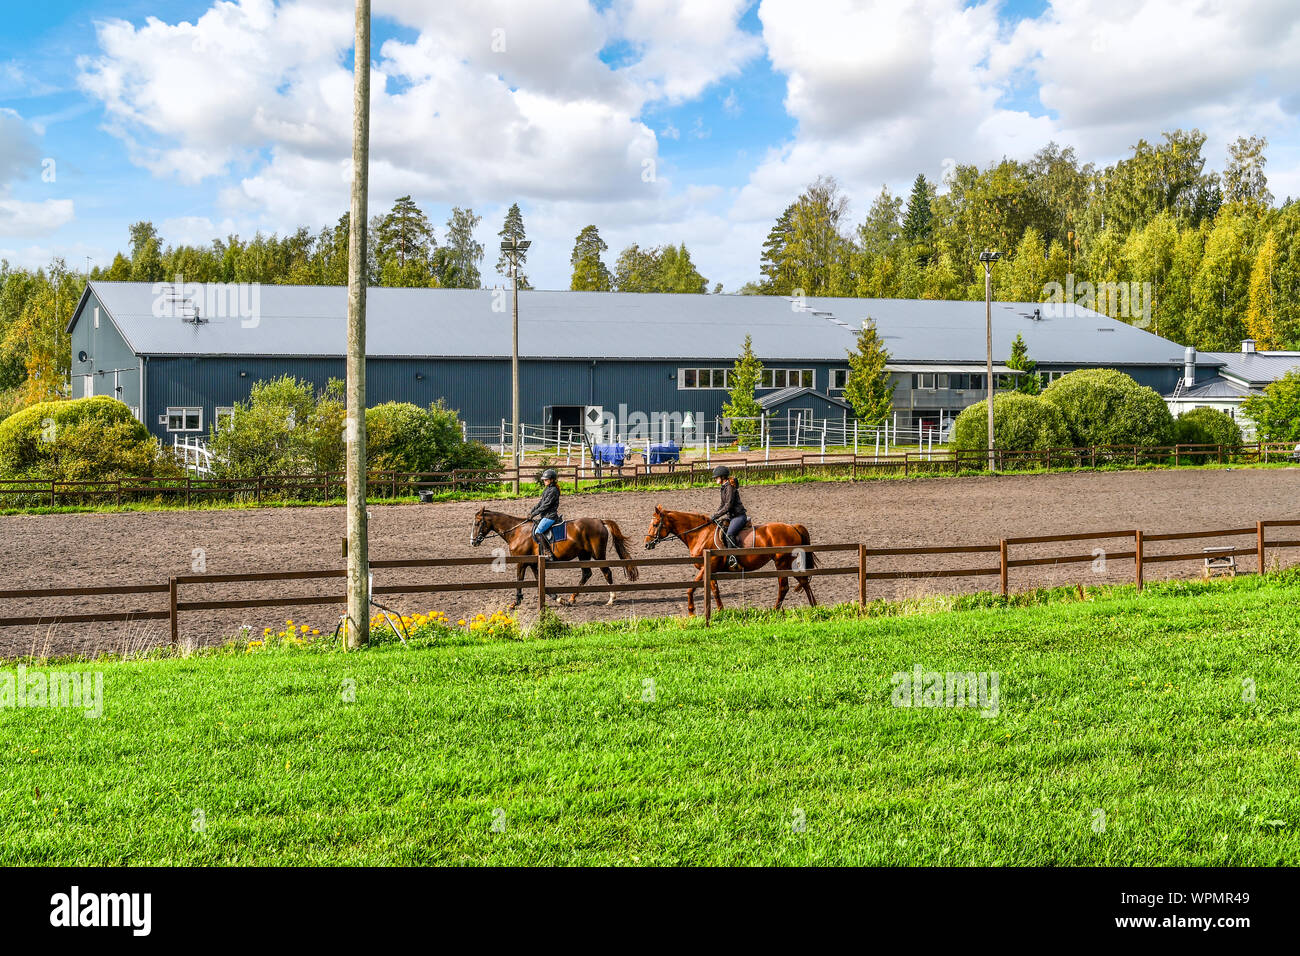 Two female equestrians ride thoroughbred horses on a horse farm in front of a large indoor horse arena at the town of Sipoo Finland Stock Photo